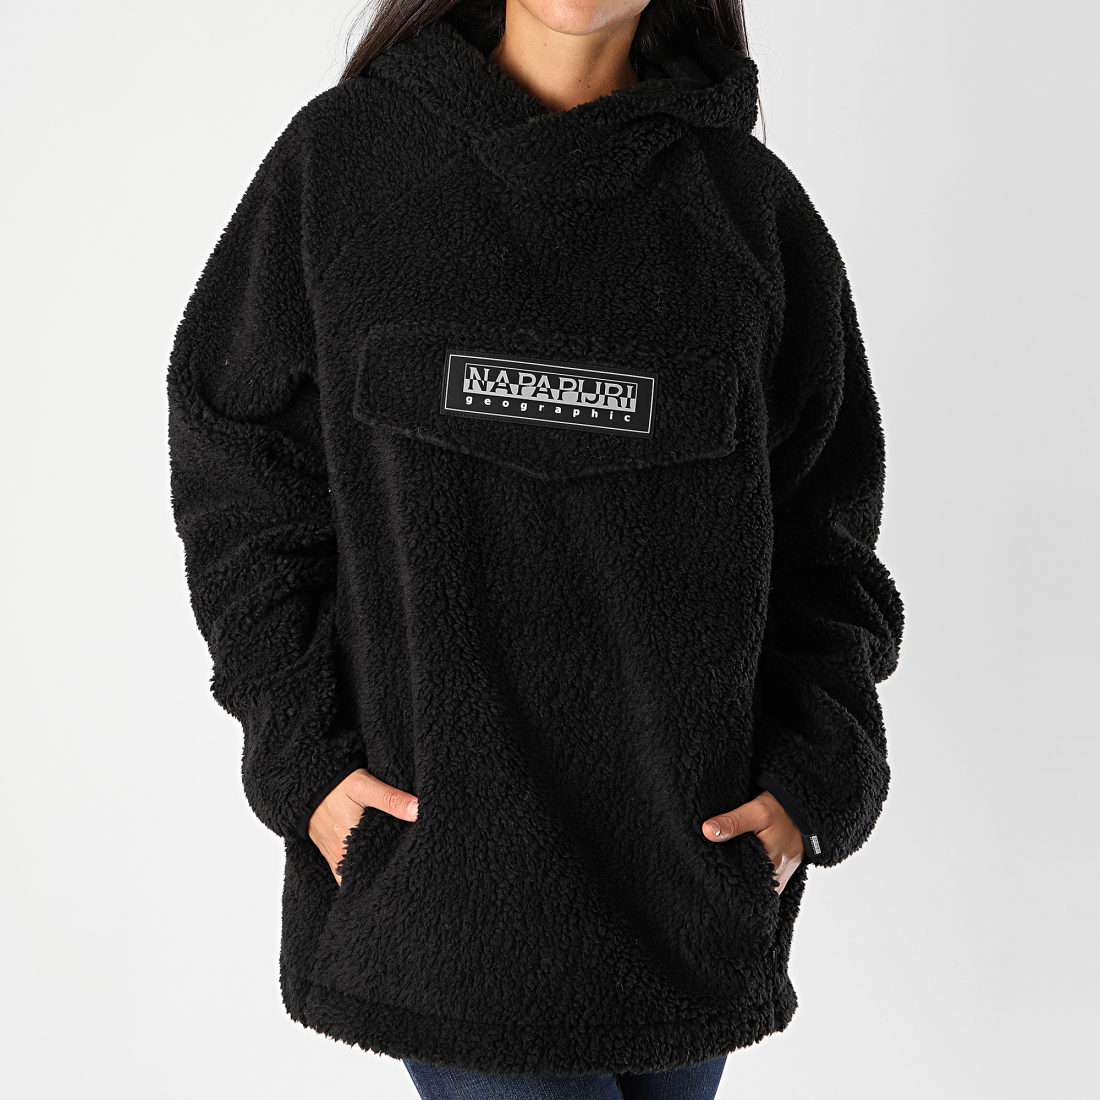 Napapijri - Sweat Capuche Femme Patch Curly